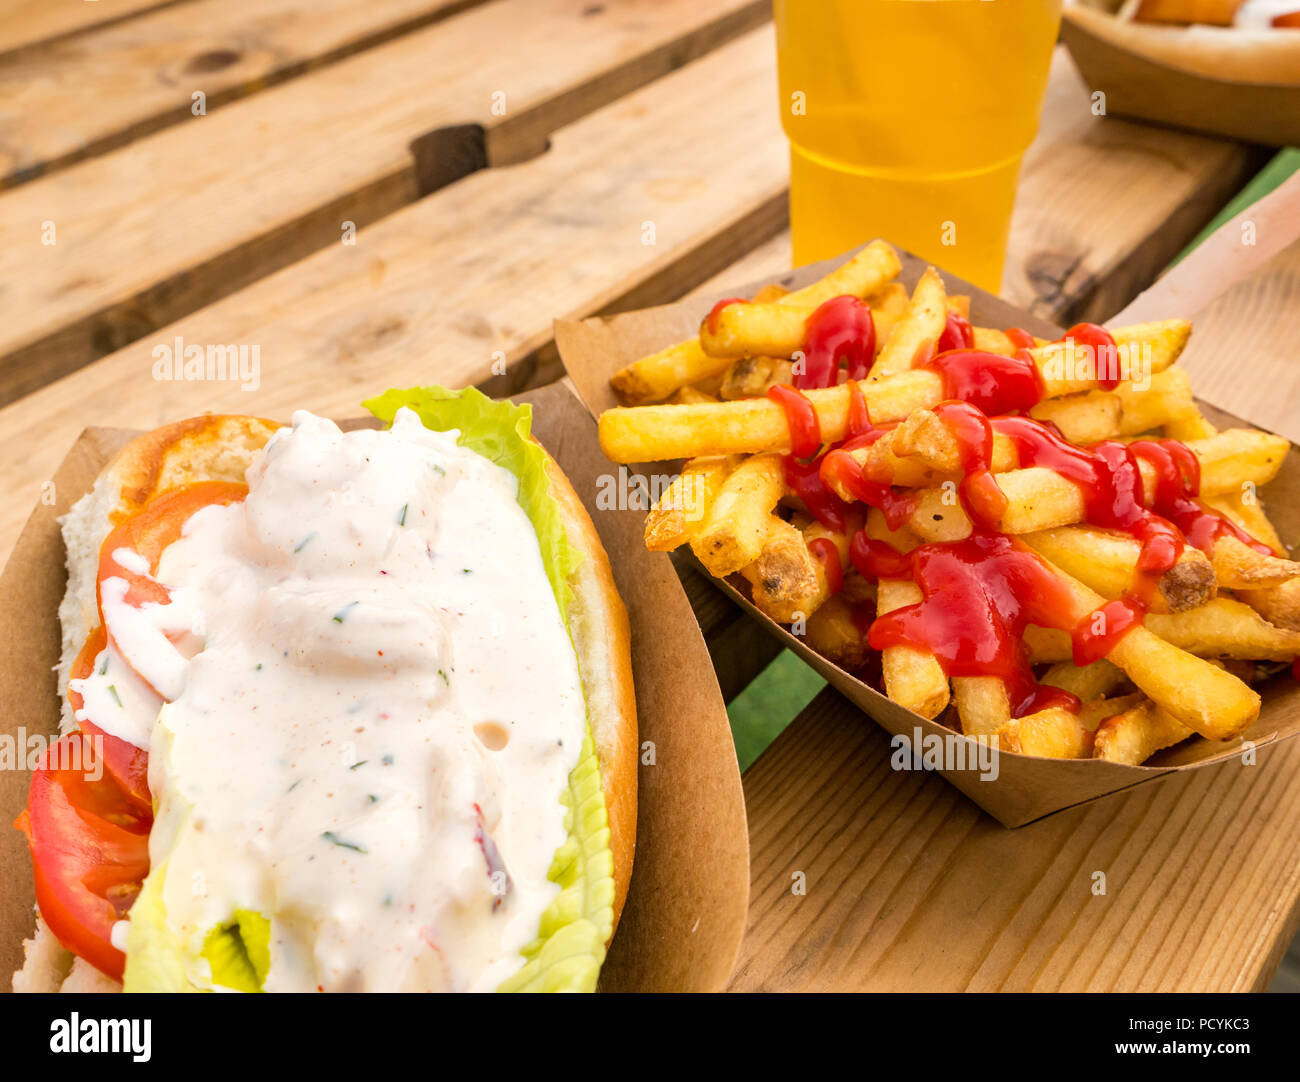 Takeaway food of lobster roll with chips or french fries with ketchup and half pint of lager on outdoor picnic table - Stock Image